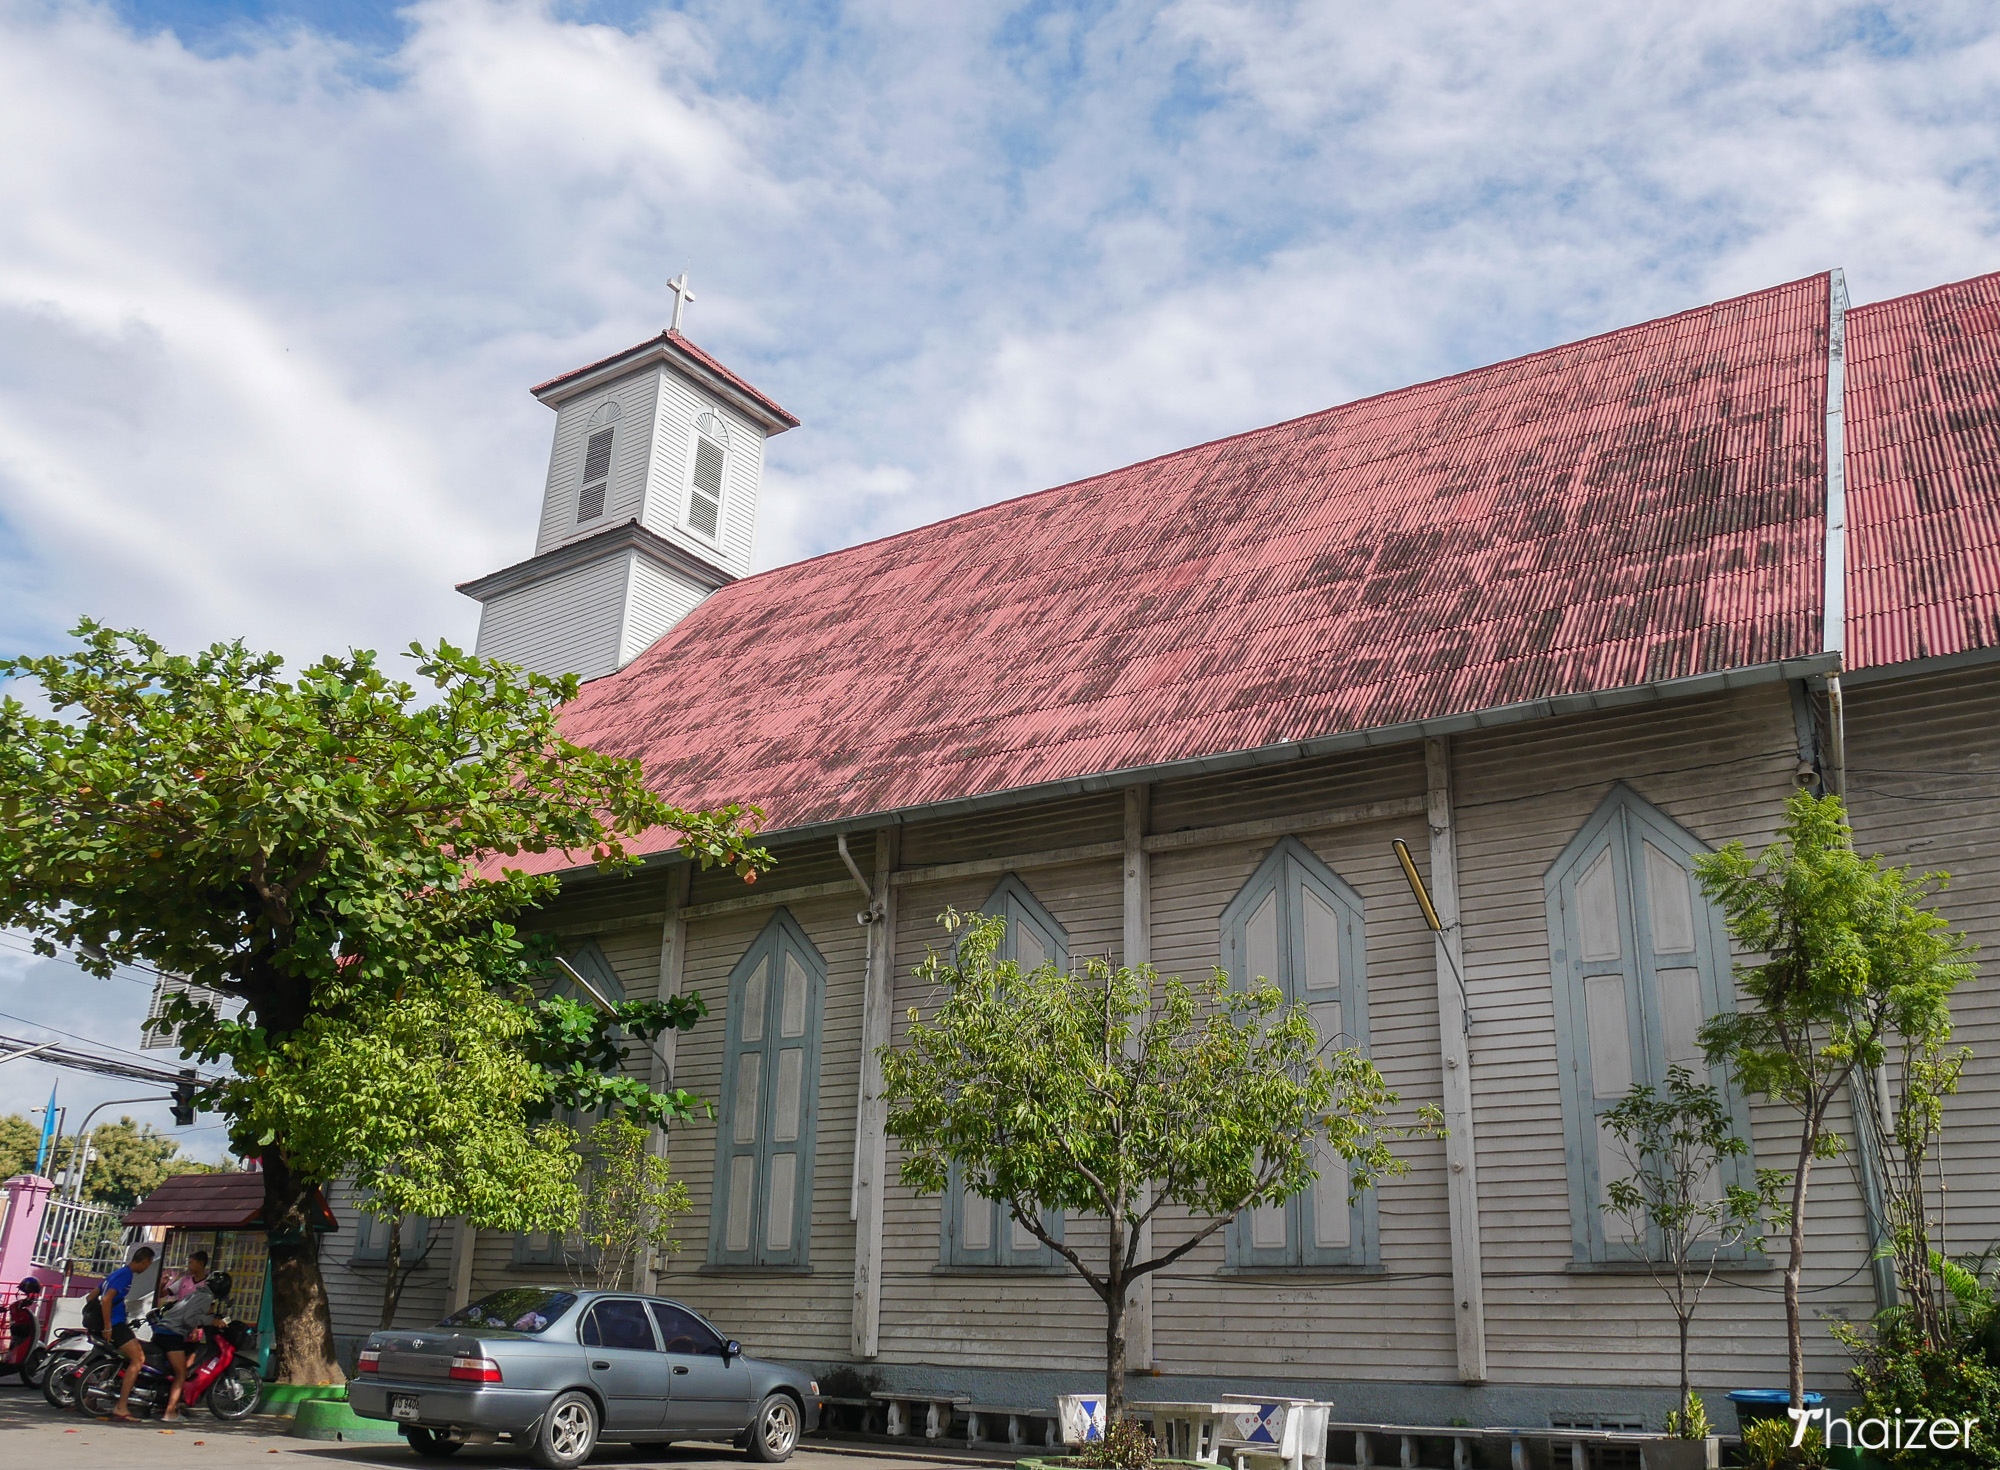 Chiang Mai's first church